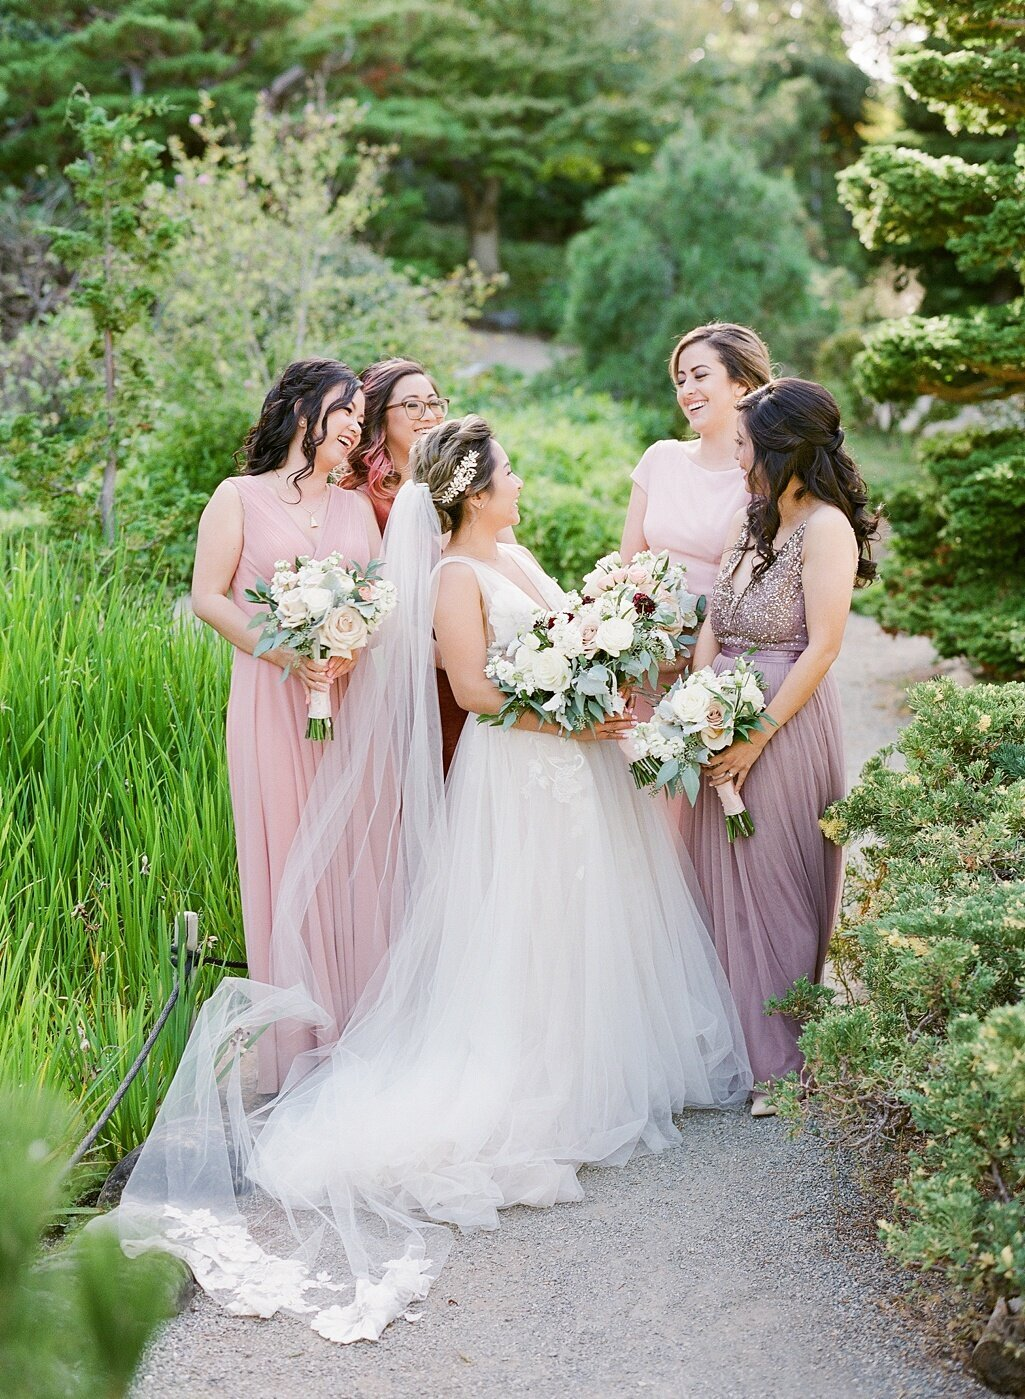 Jessie-Barksdale-Photography_Hakone-Gardens-Saratoga_San-Francisco-Bay-Area-Wedding-Photographer_0057